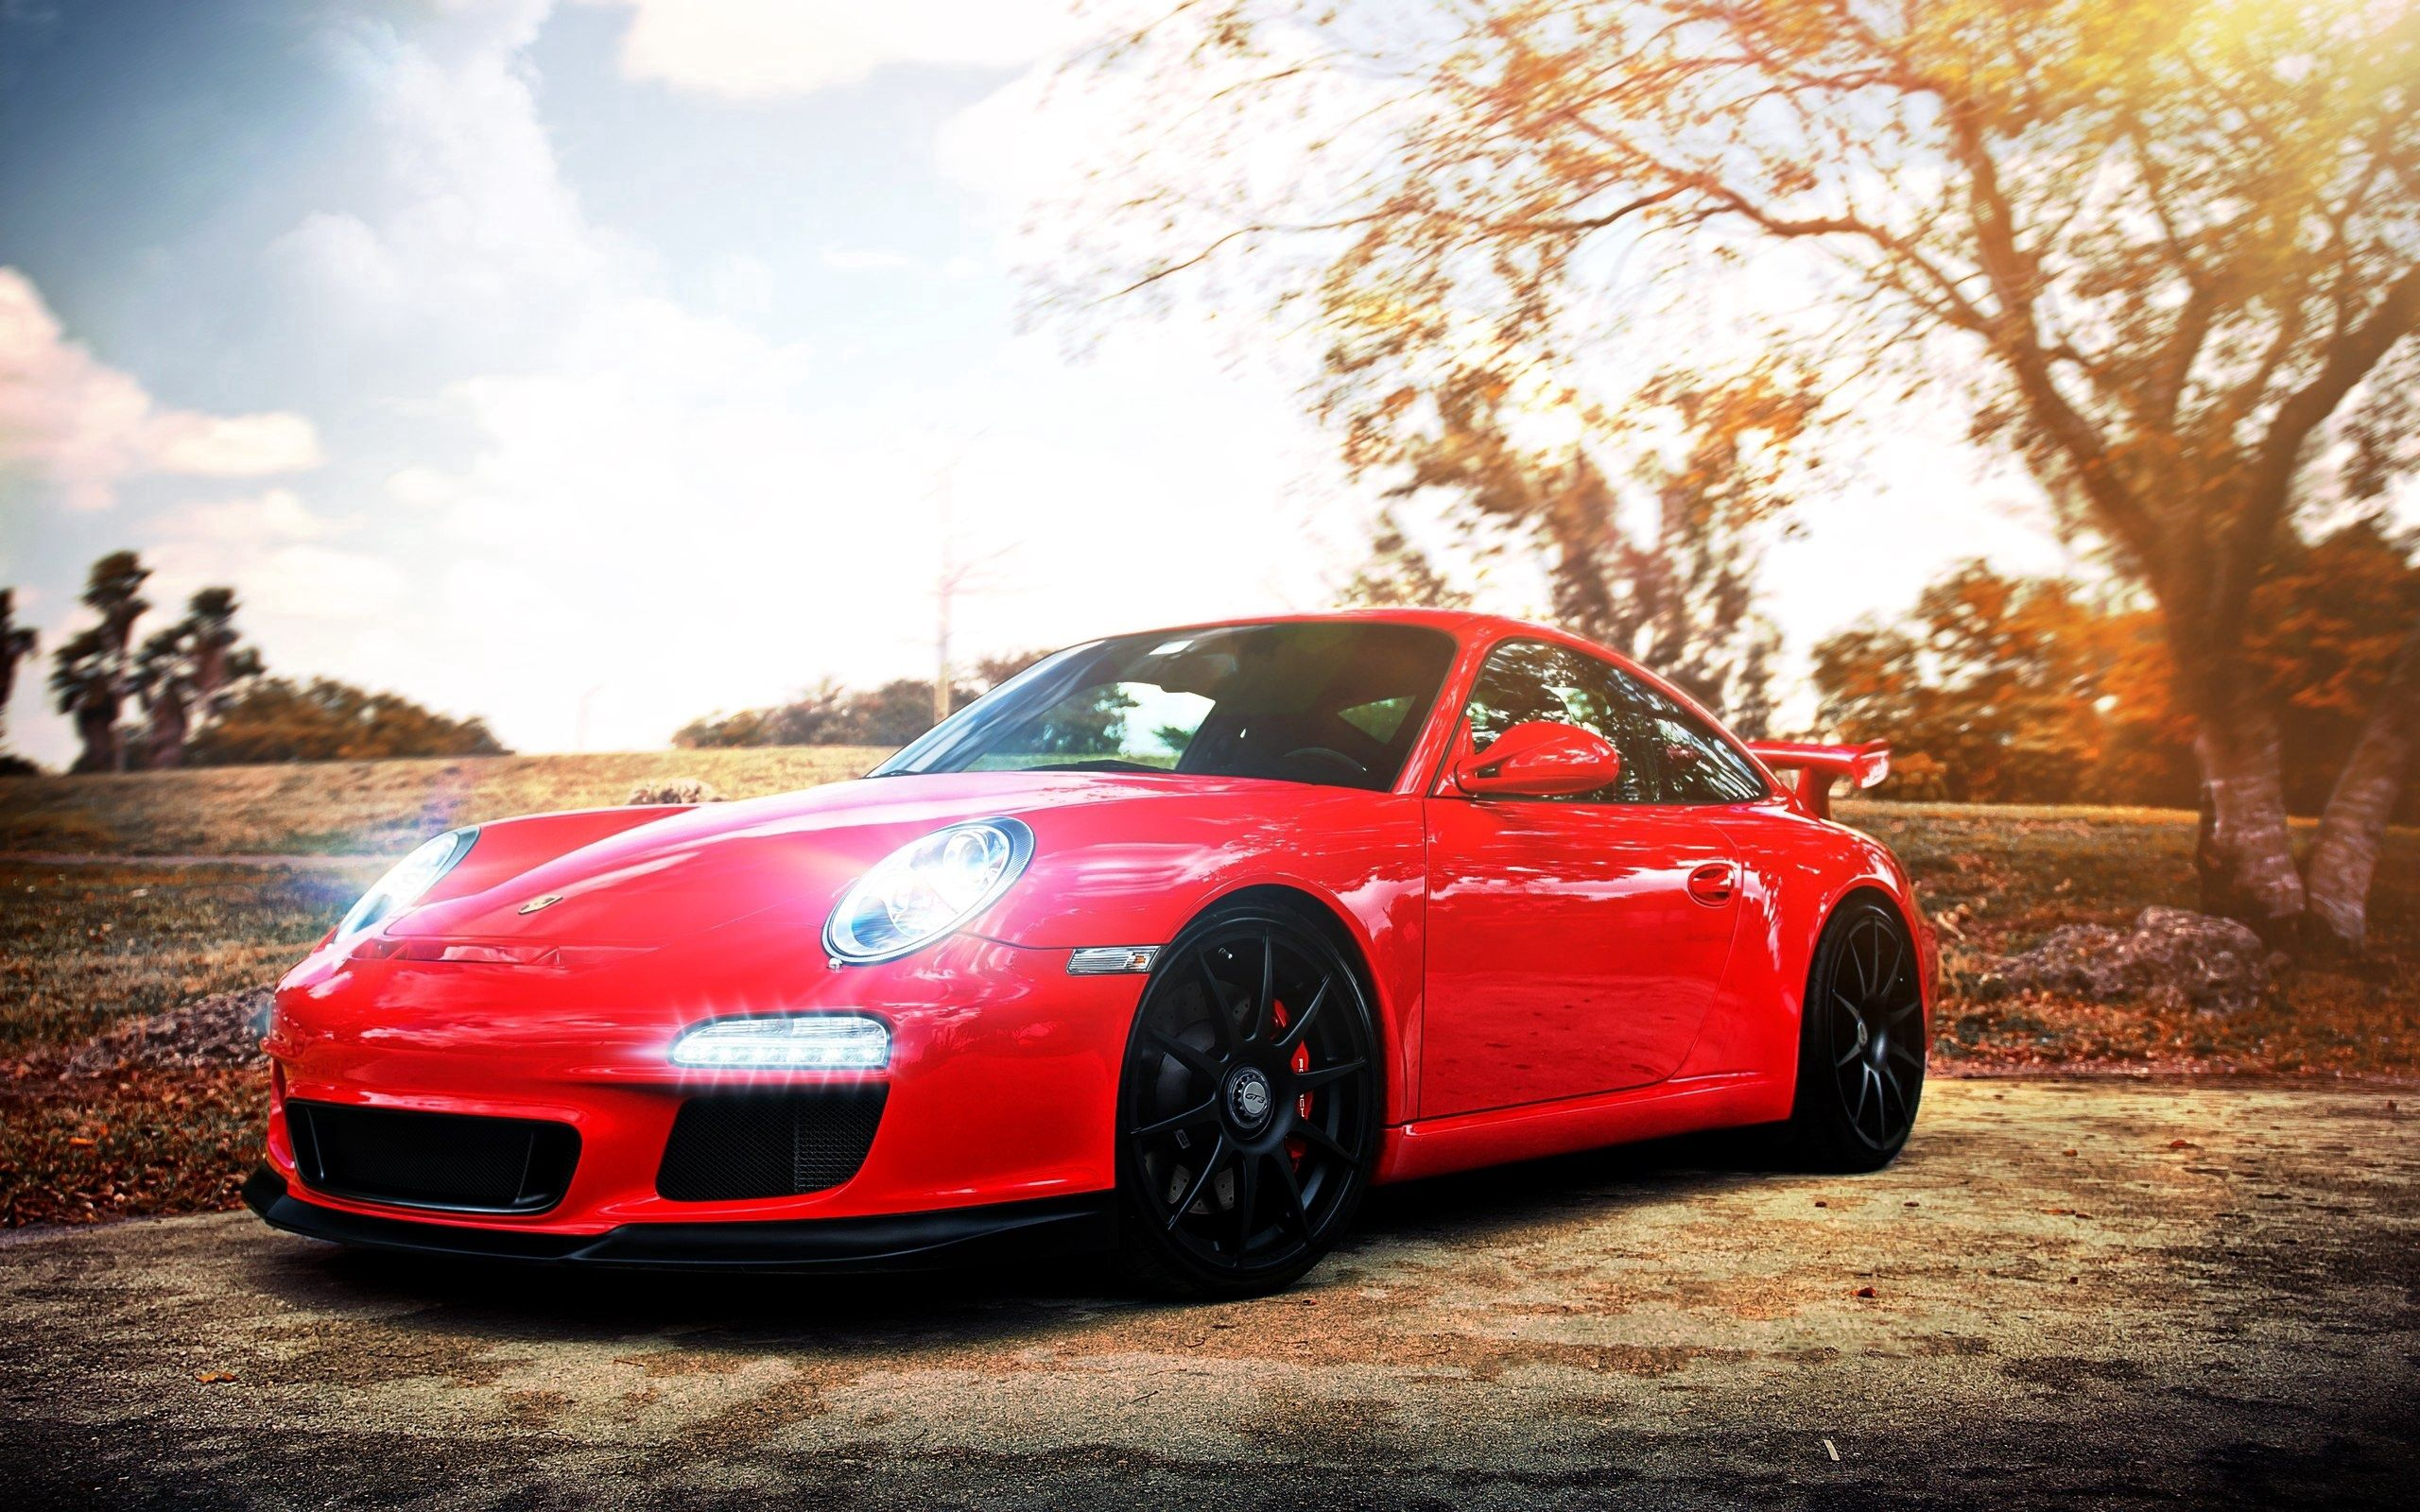 150783 download wallpaper Cars, Auto, Porsche, Car, Machine screensavers and pictures for free